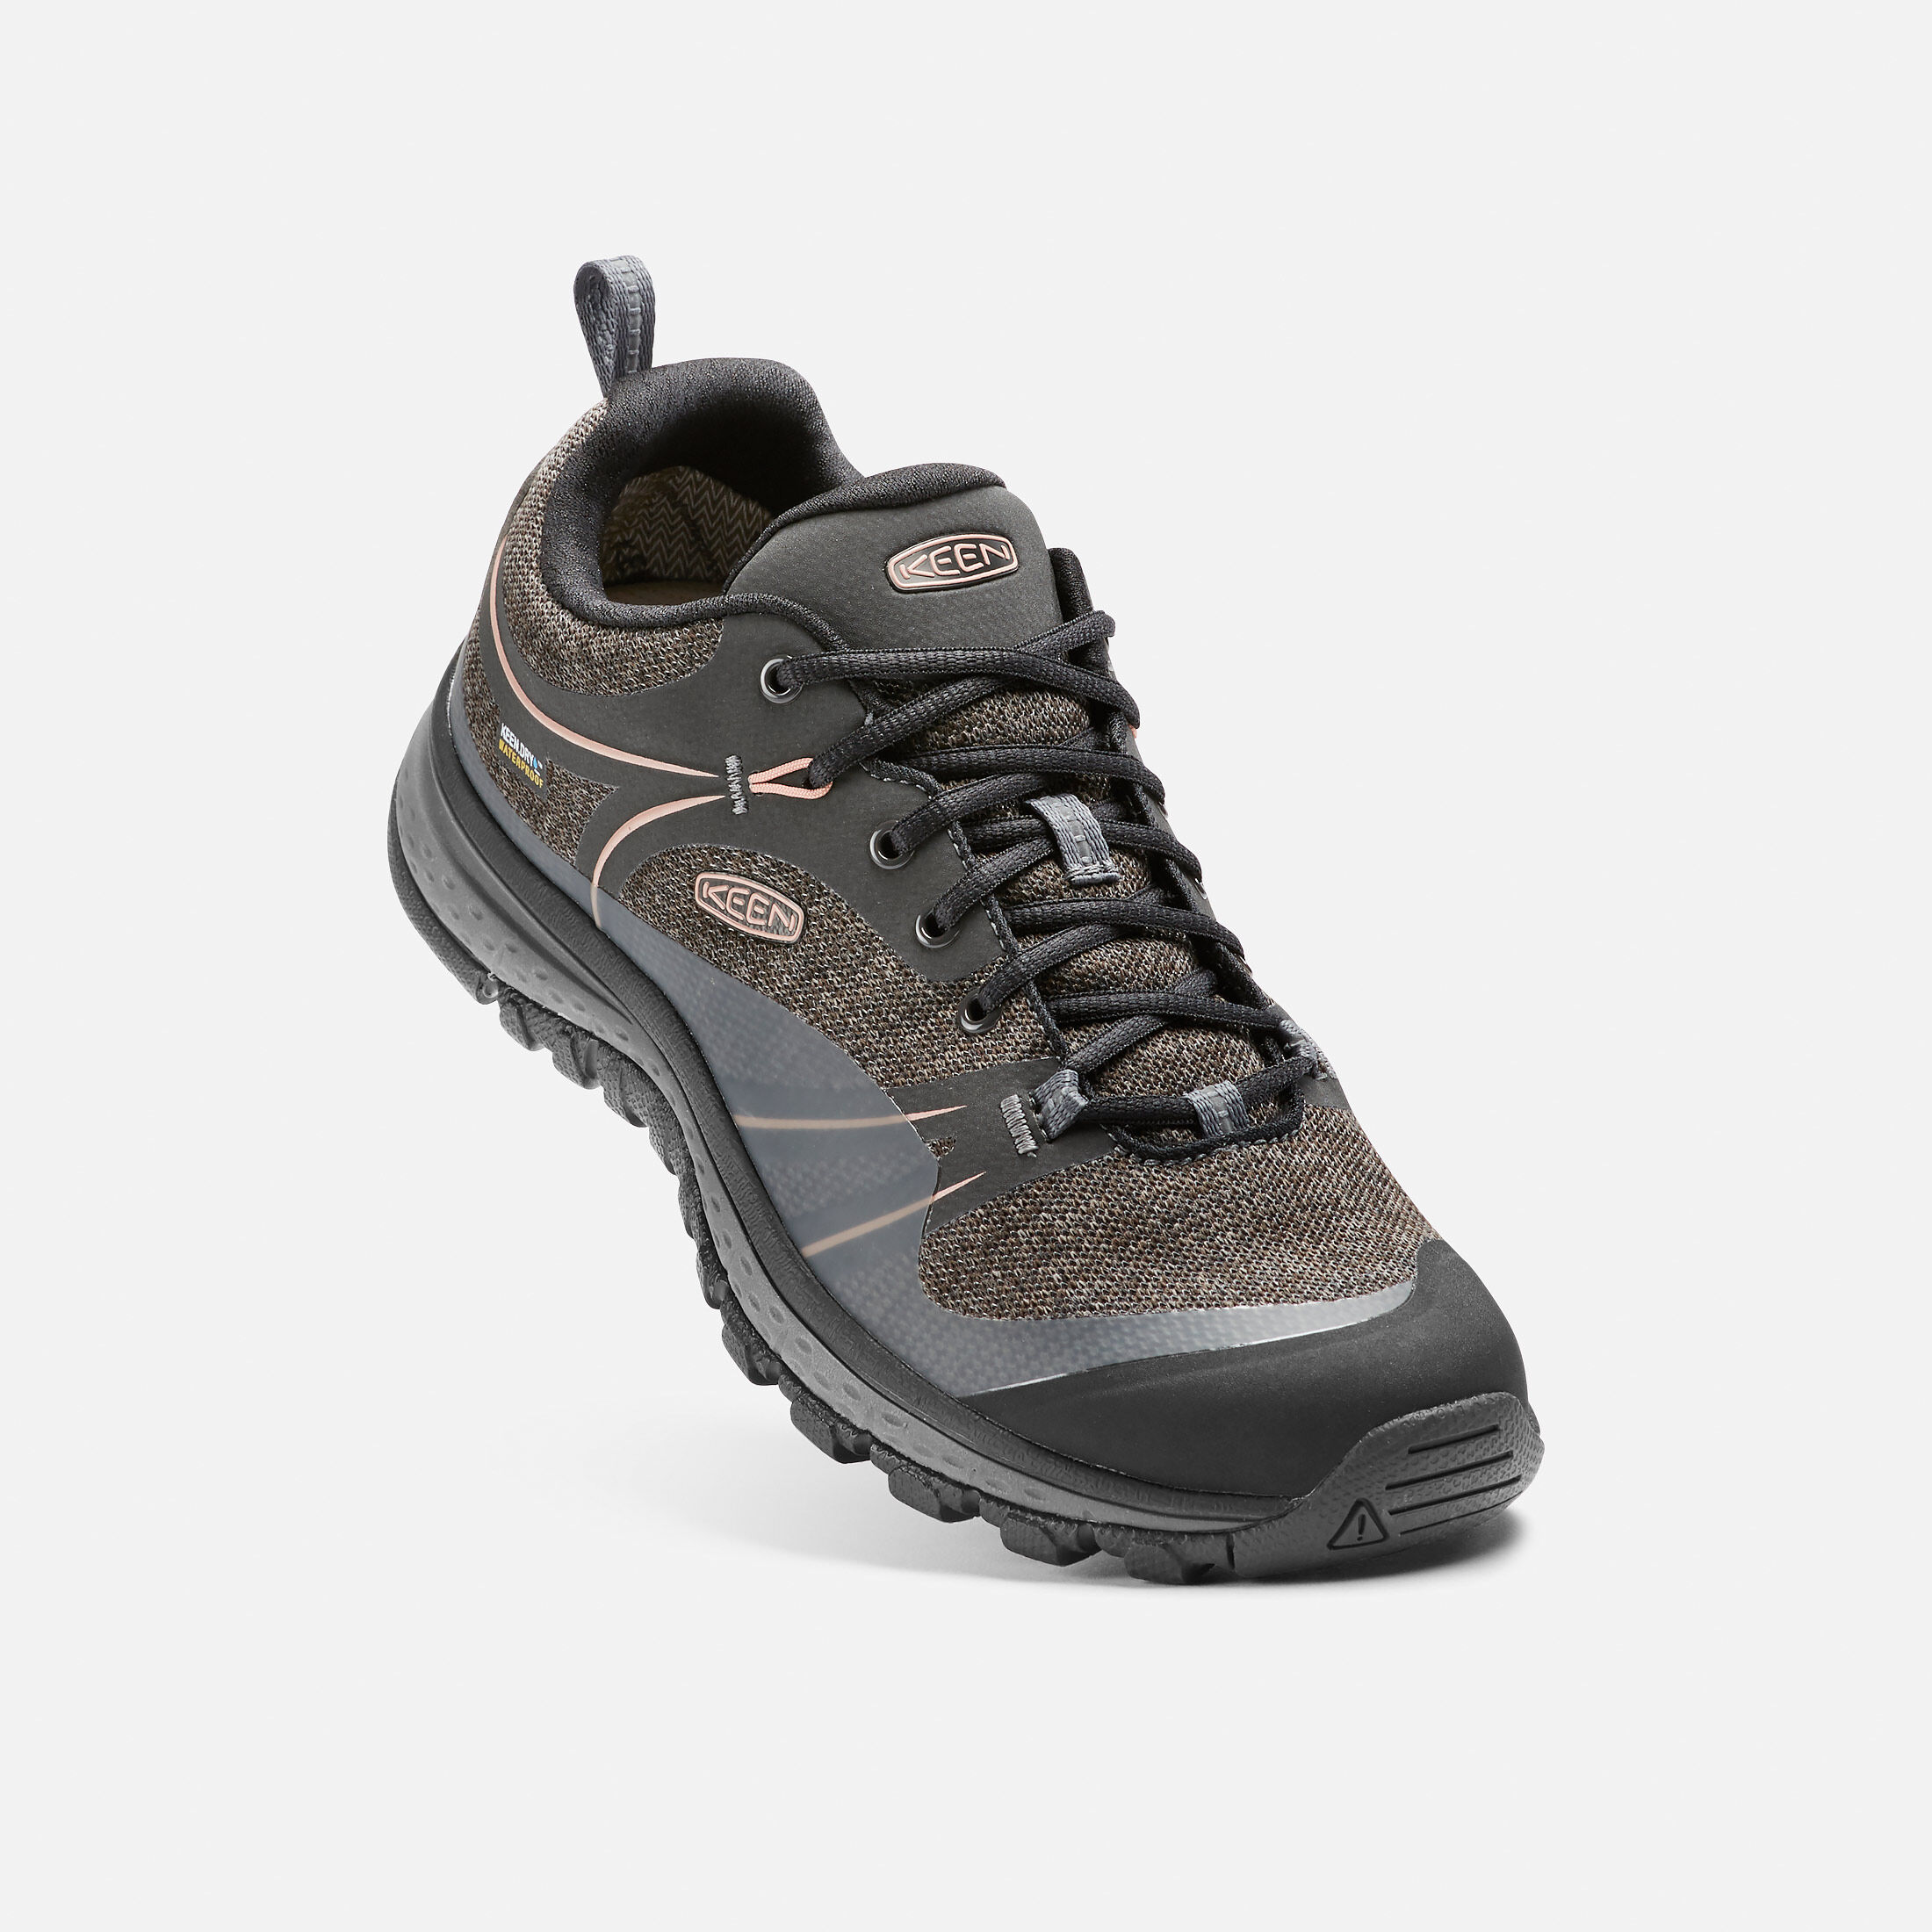 Keen Terradora Wp Us 9.5 Eu 40 Blk Athletic Support Trail Hiking Womens Shoes Women's Shoes Athletic Shoes